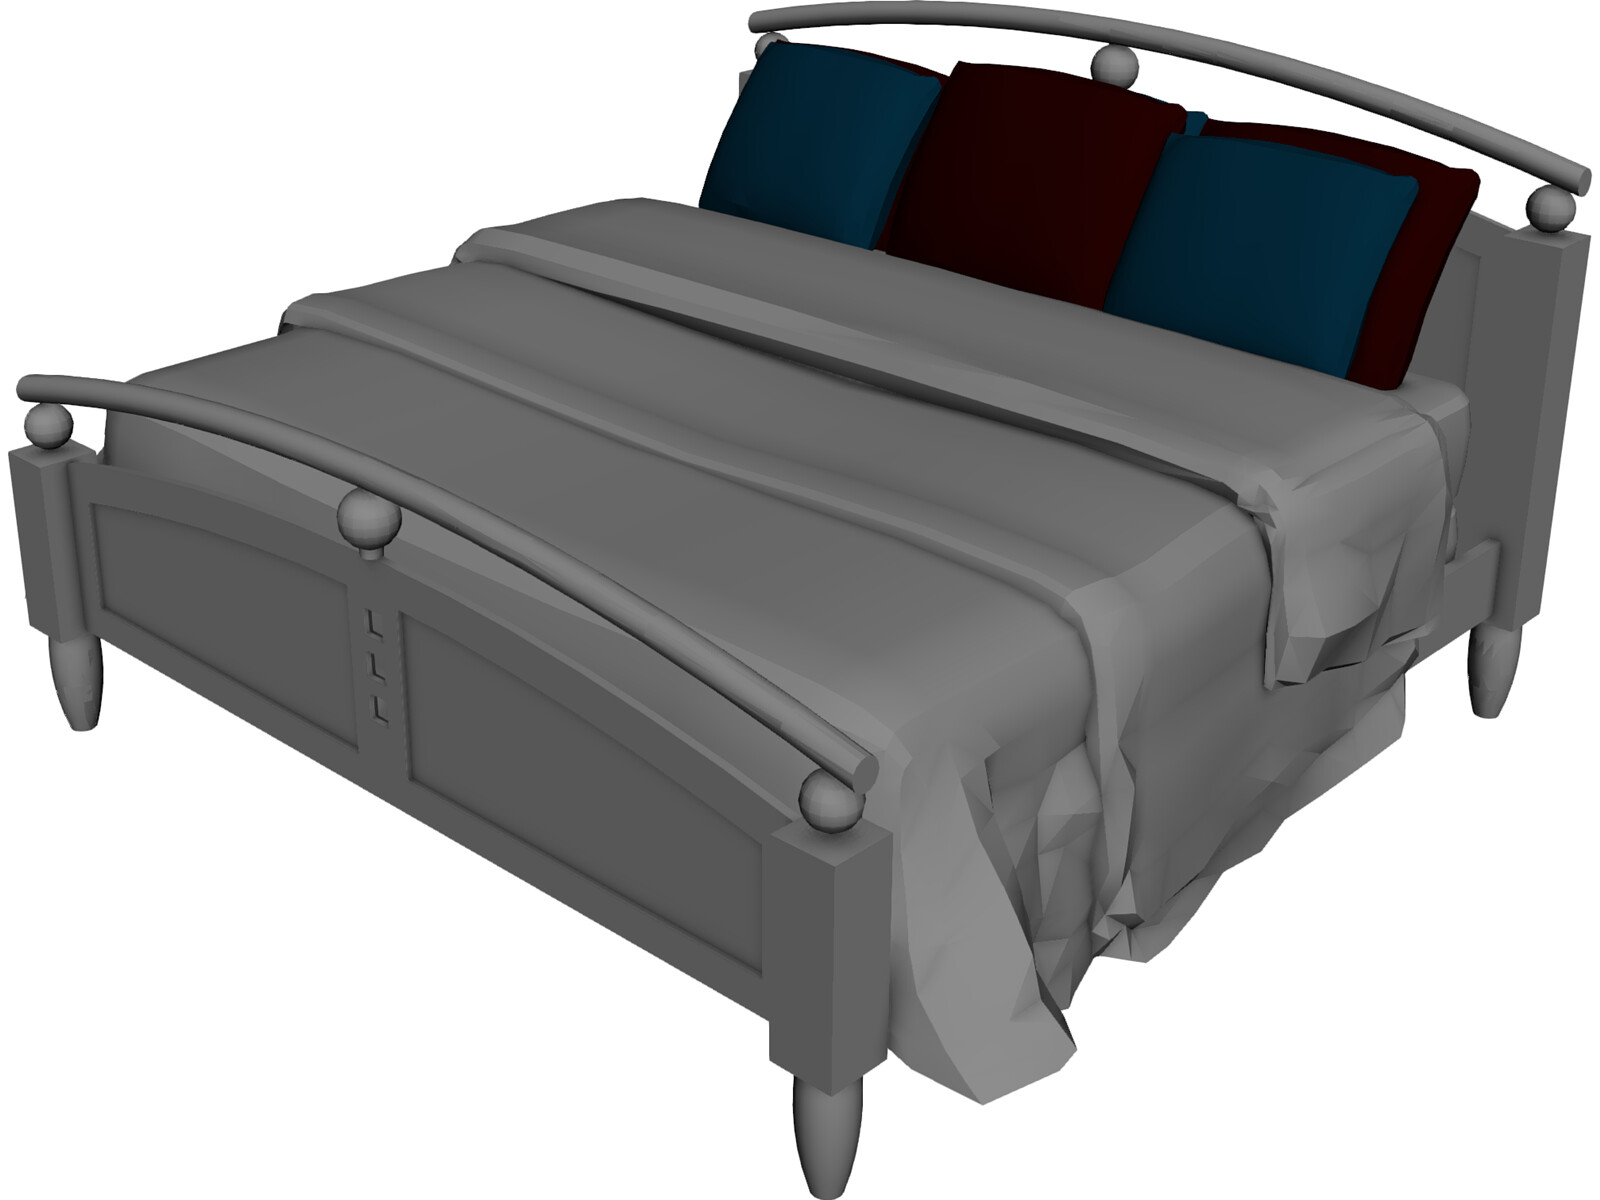 Bed Classic